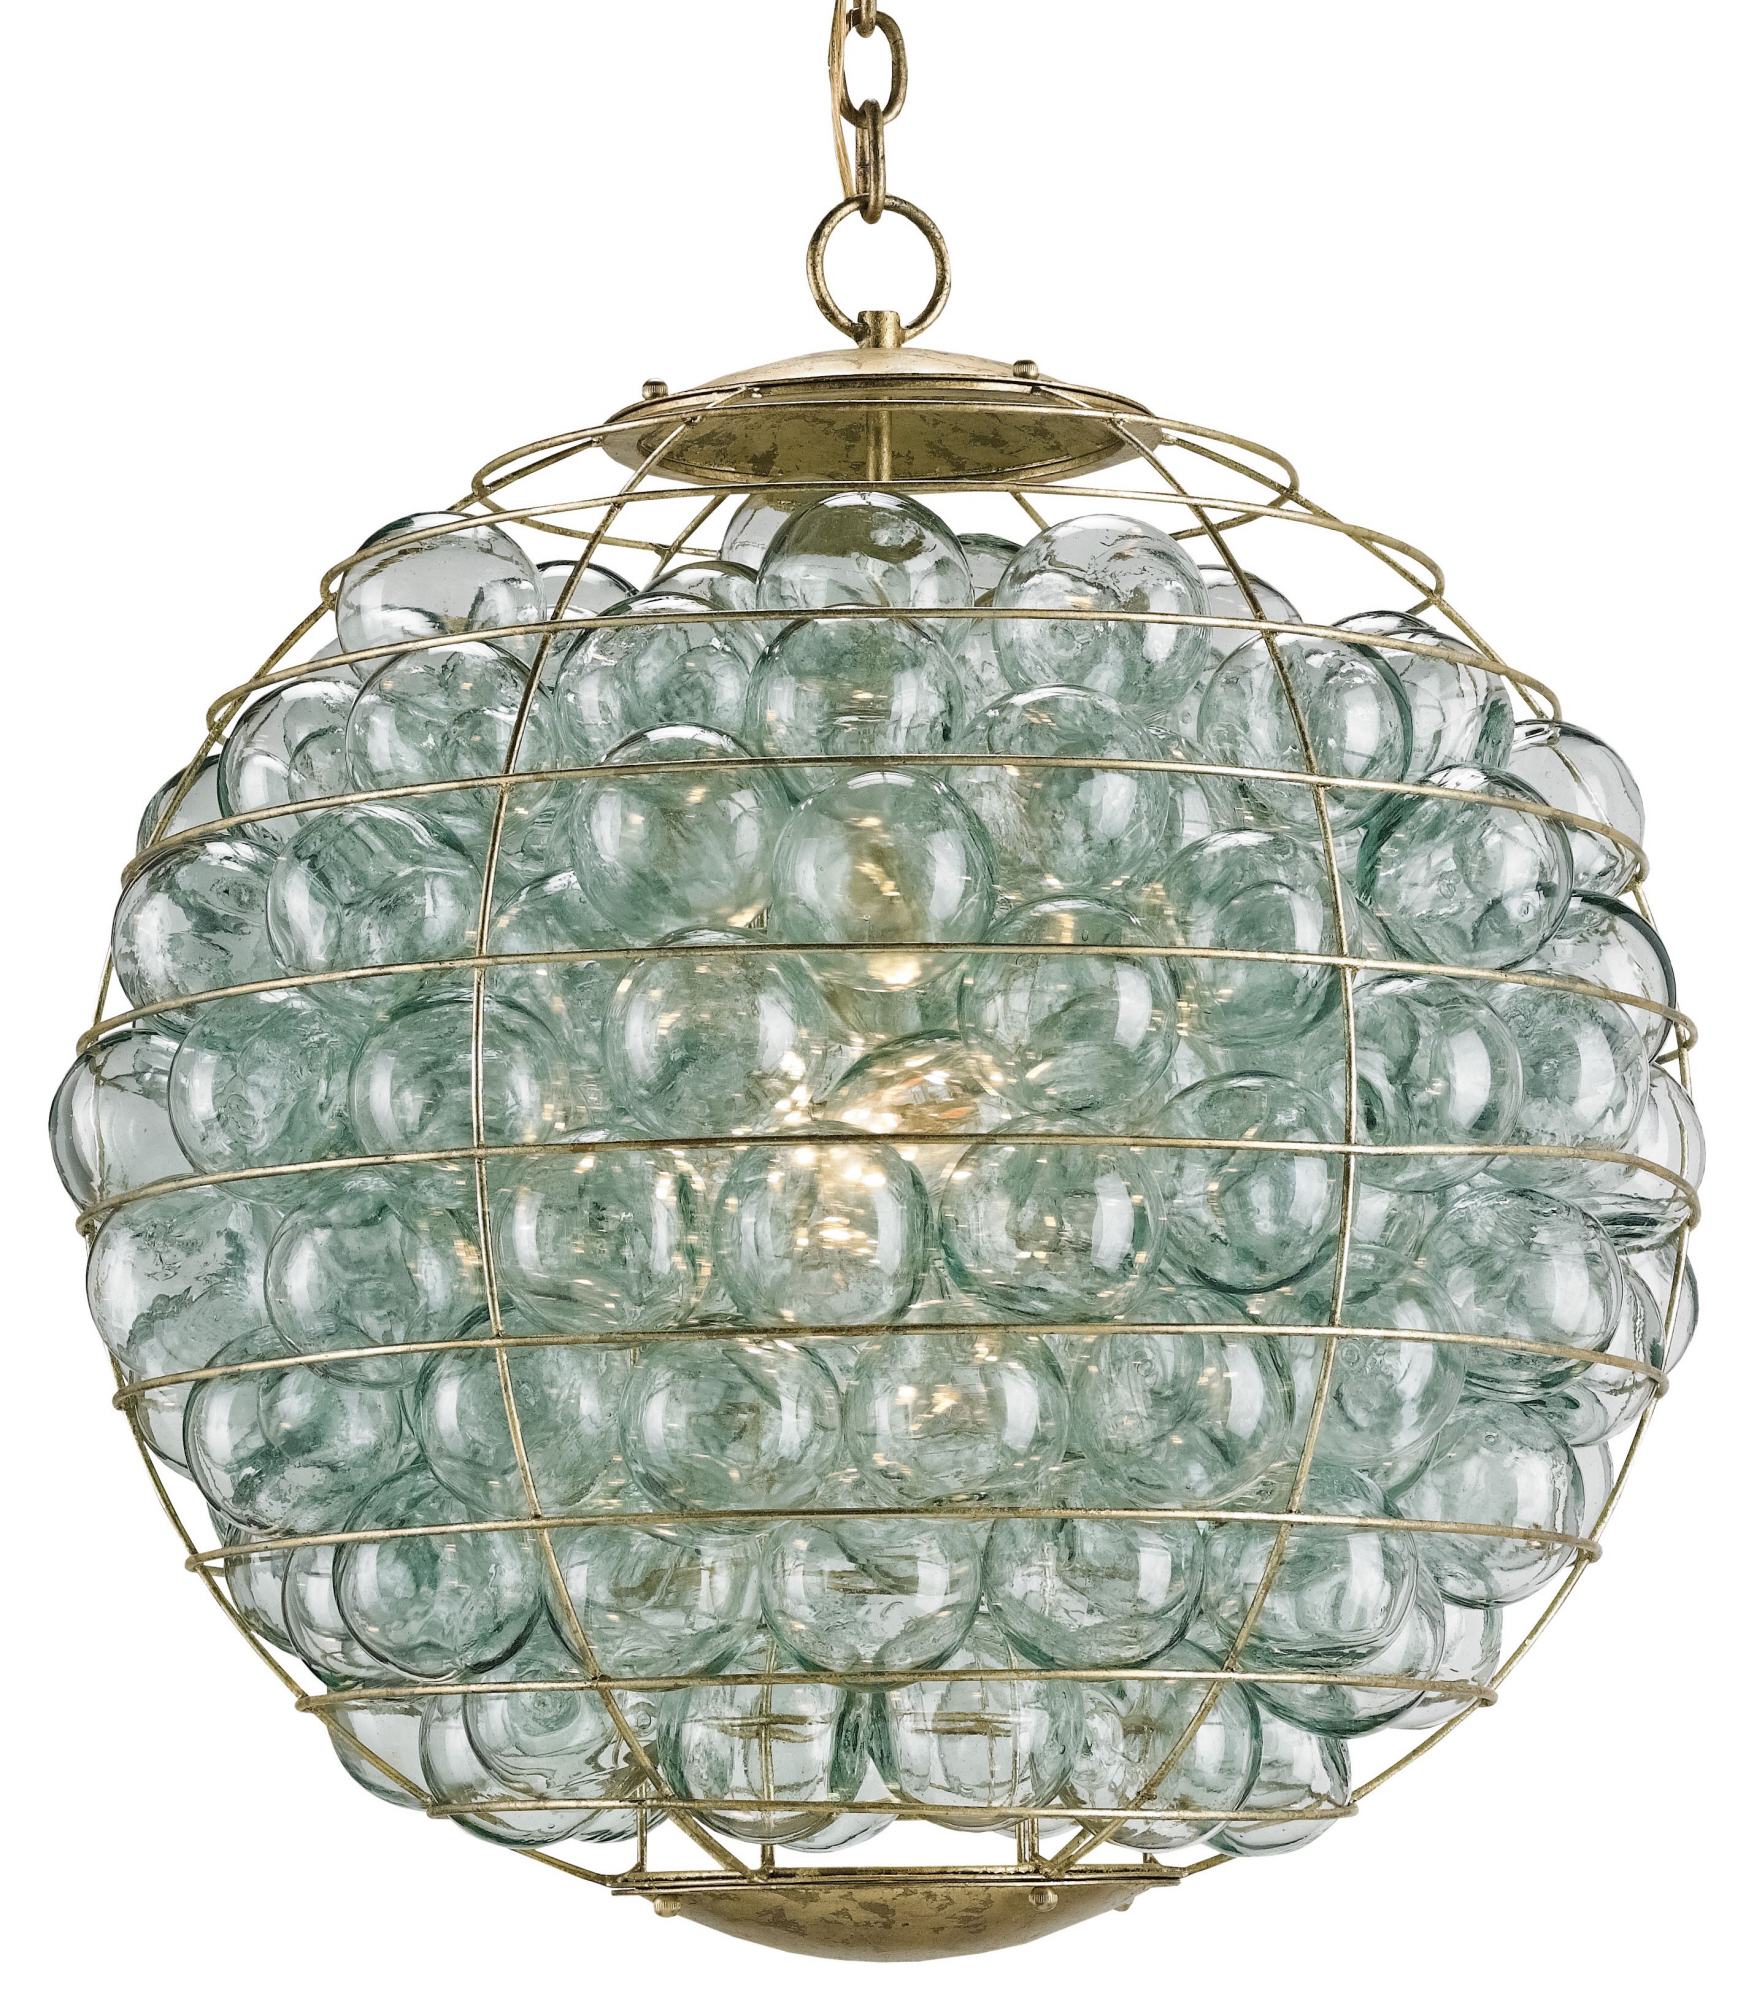 Currey & Company Pastiche Orb Chandelier